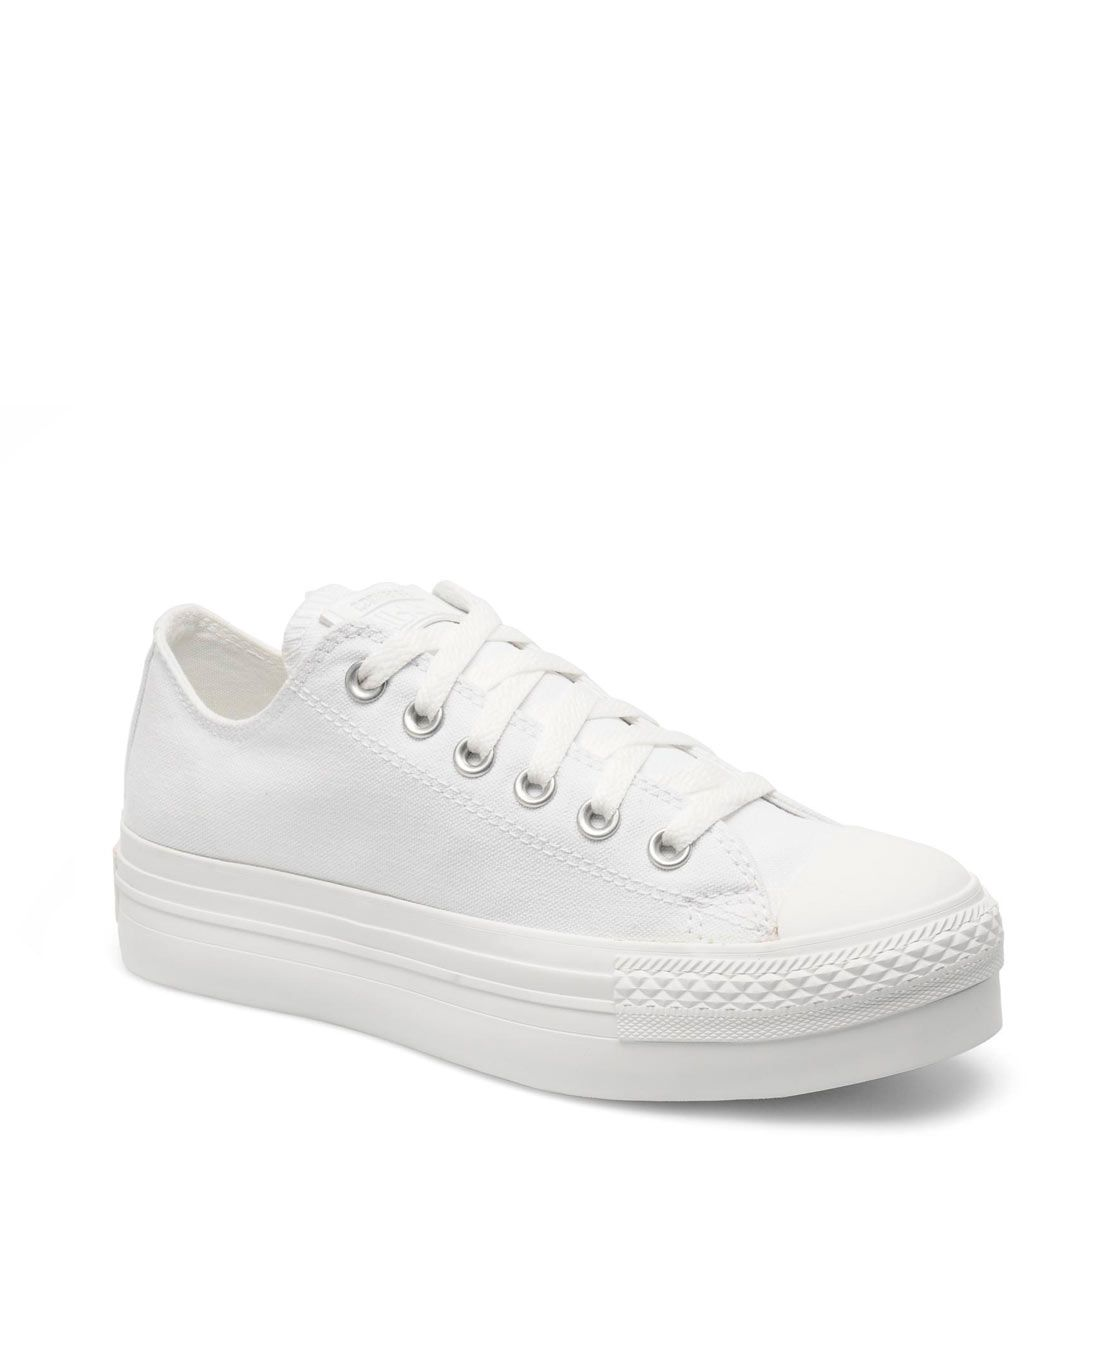 34ef9b332fc ... where can i buy zapatillas plataforma converse chuck taylor blanco  3f99d e0f2c